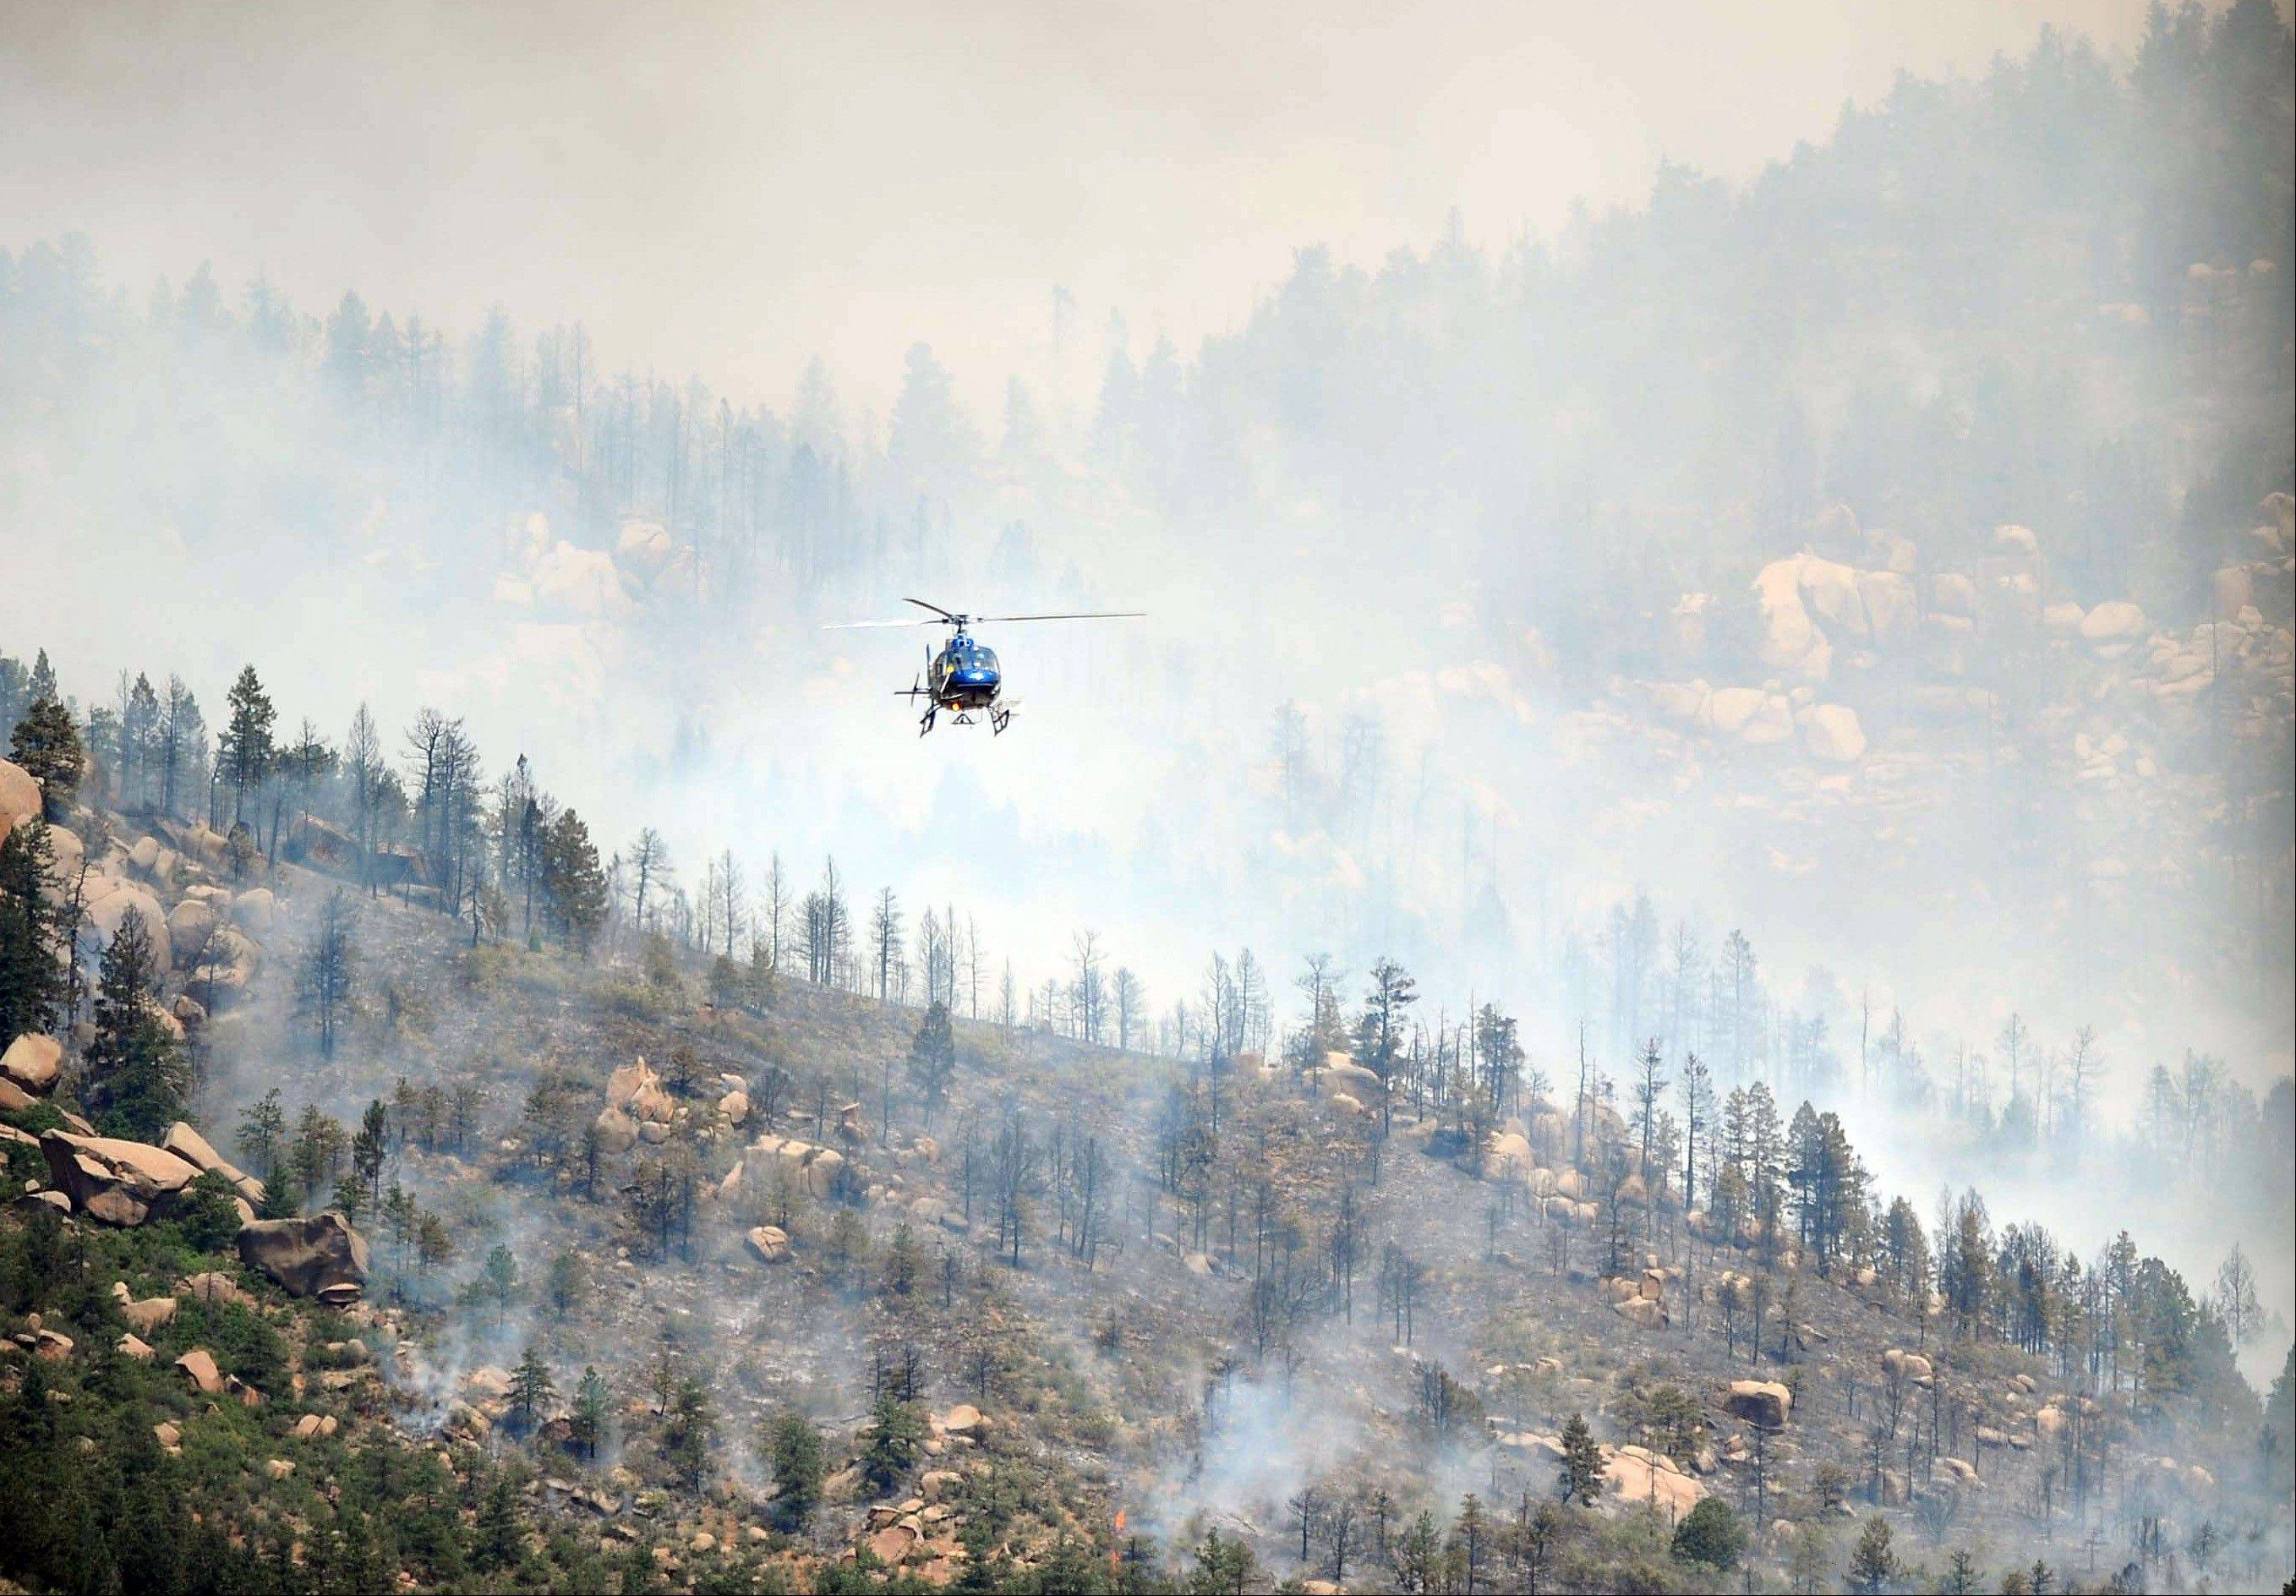 A helicopter flies over a wildfire burning west of Manitou Springs, Colo., on Sunday, June 24, 2012. The fire erupted and grew out of control to more than 3 square miles early Sunday, prompting the evacuation of more than 11,000 residents and an unknown number of tourists.